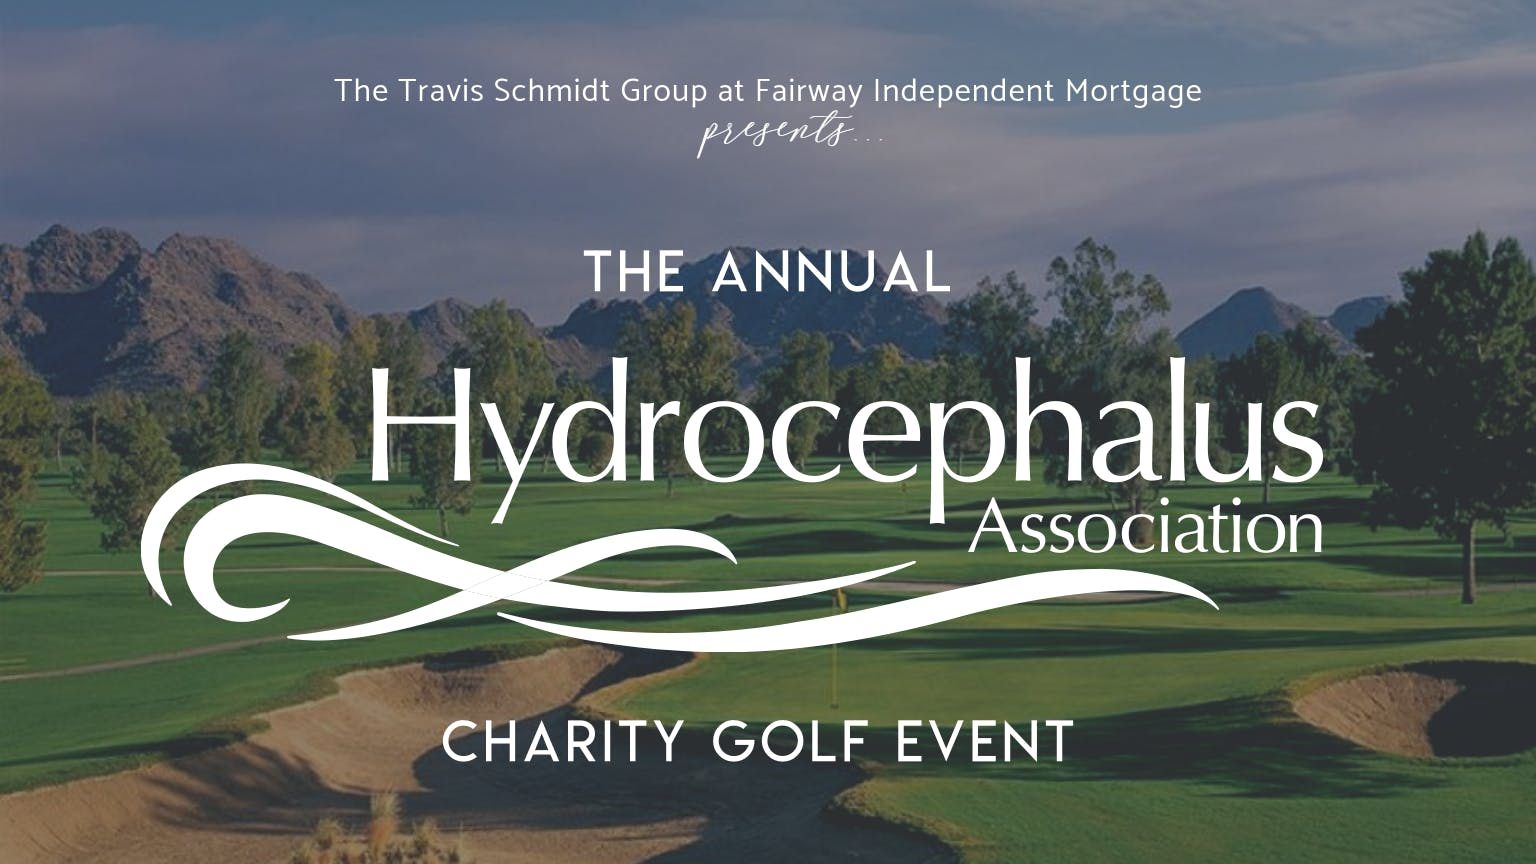 The Annual Hydrocephalus Charity Golf Event